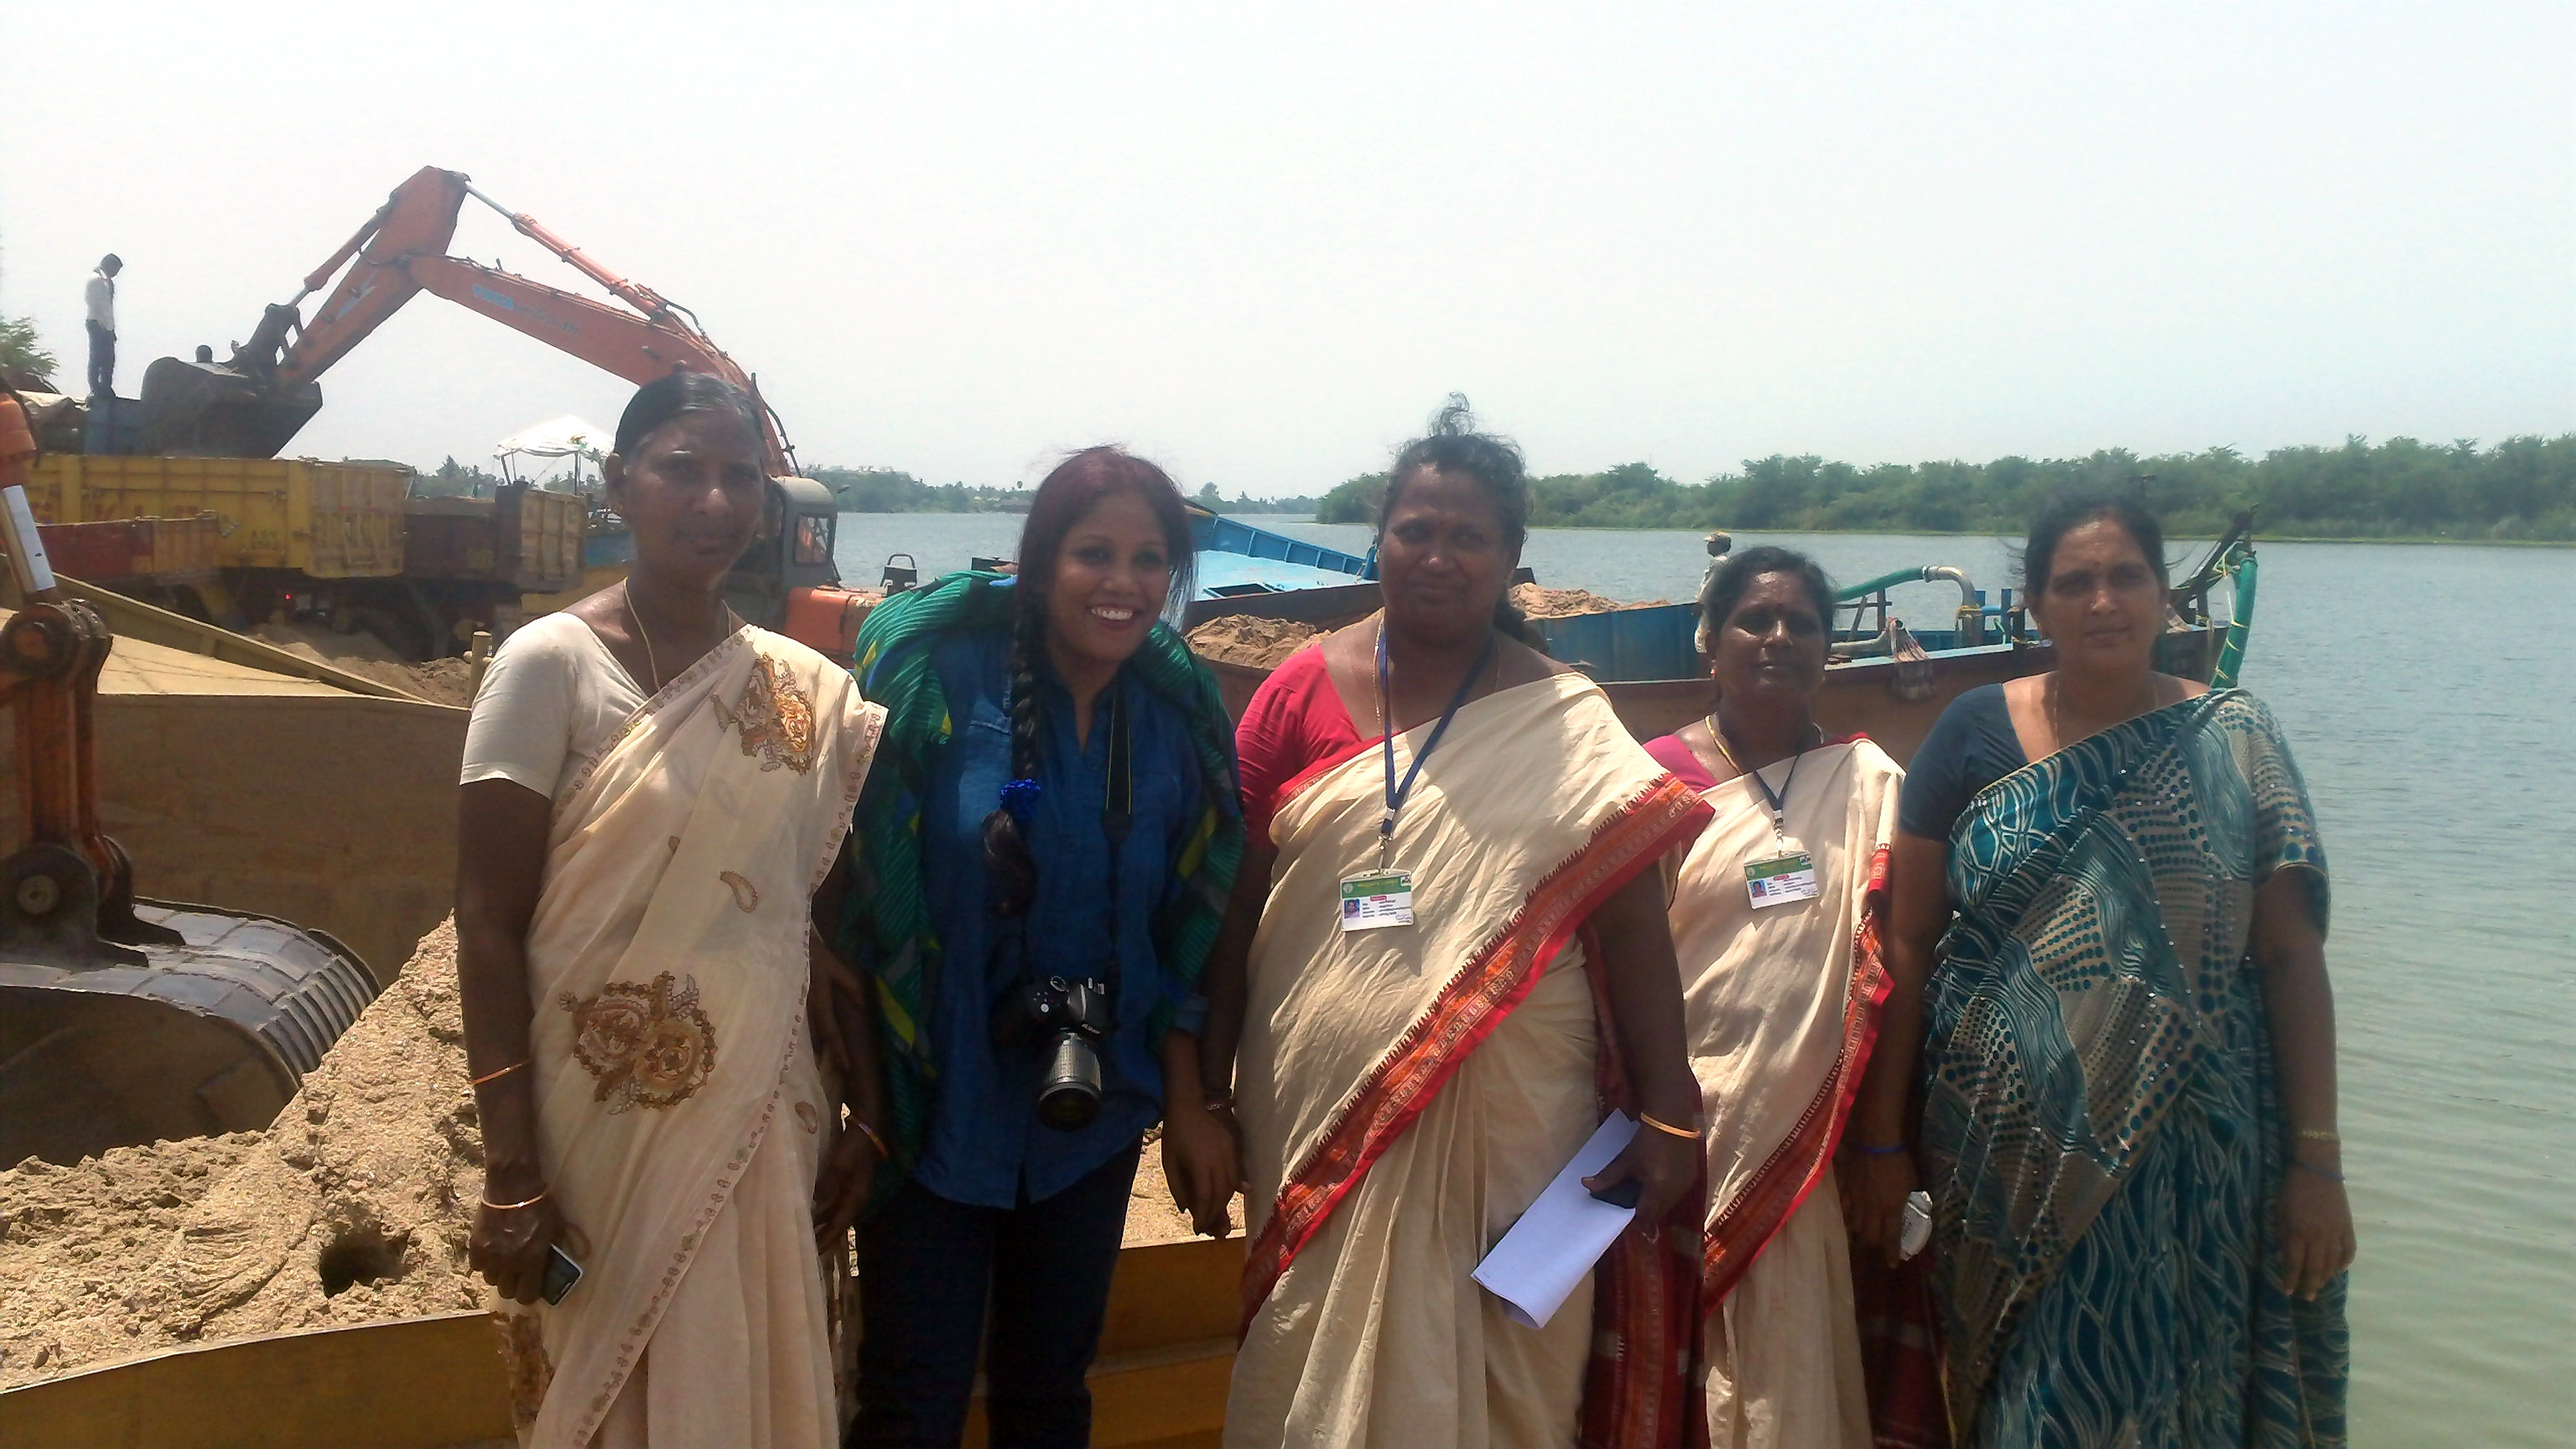 With women who stopped multi-million, illicit sand mining industry by river Krishna in southern India